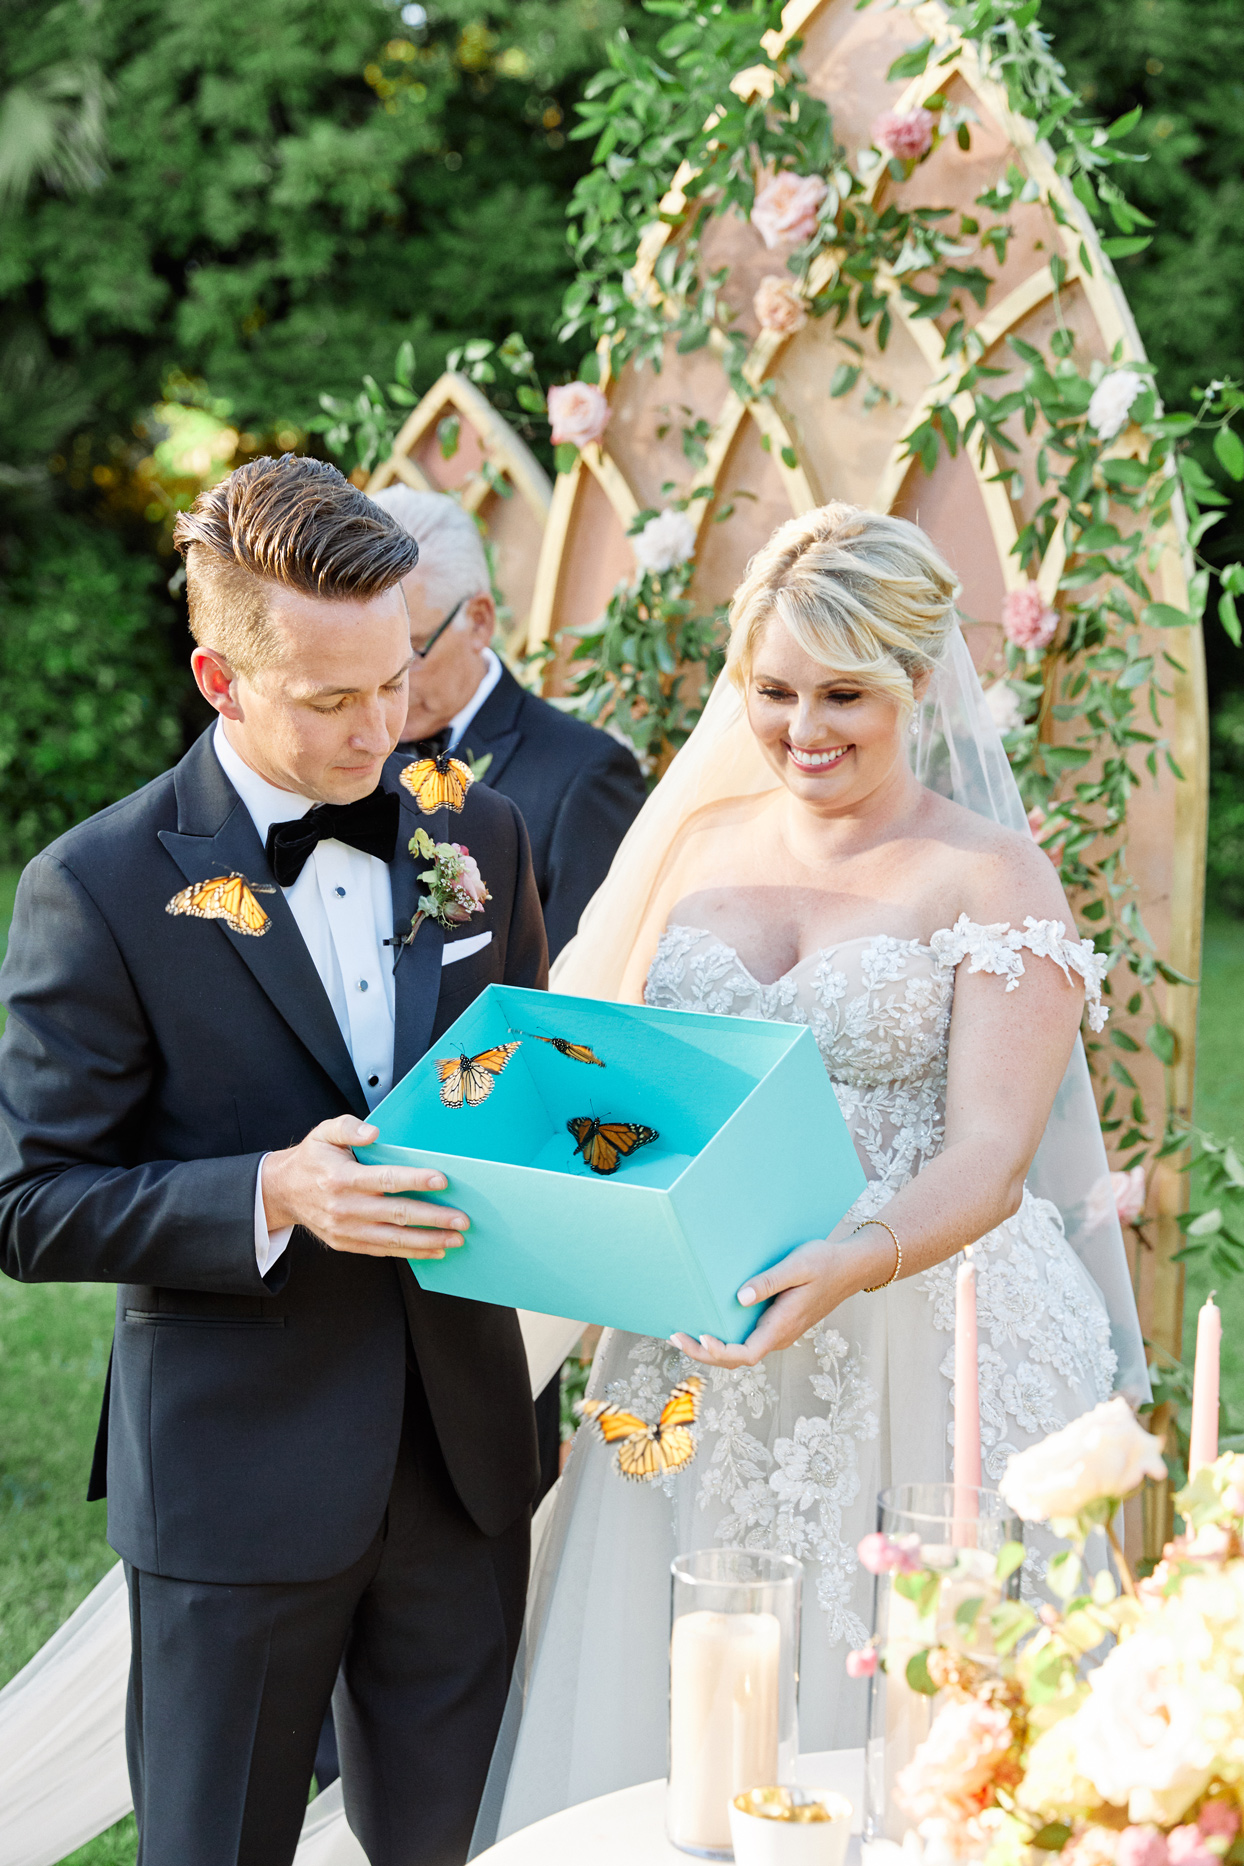 bride and groom releasing butterflies from blue box